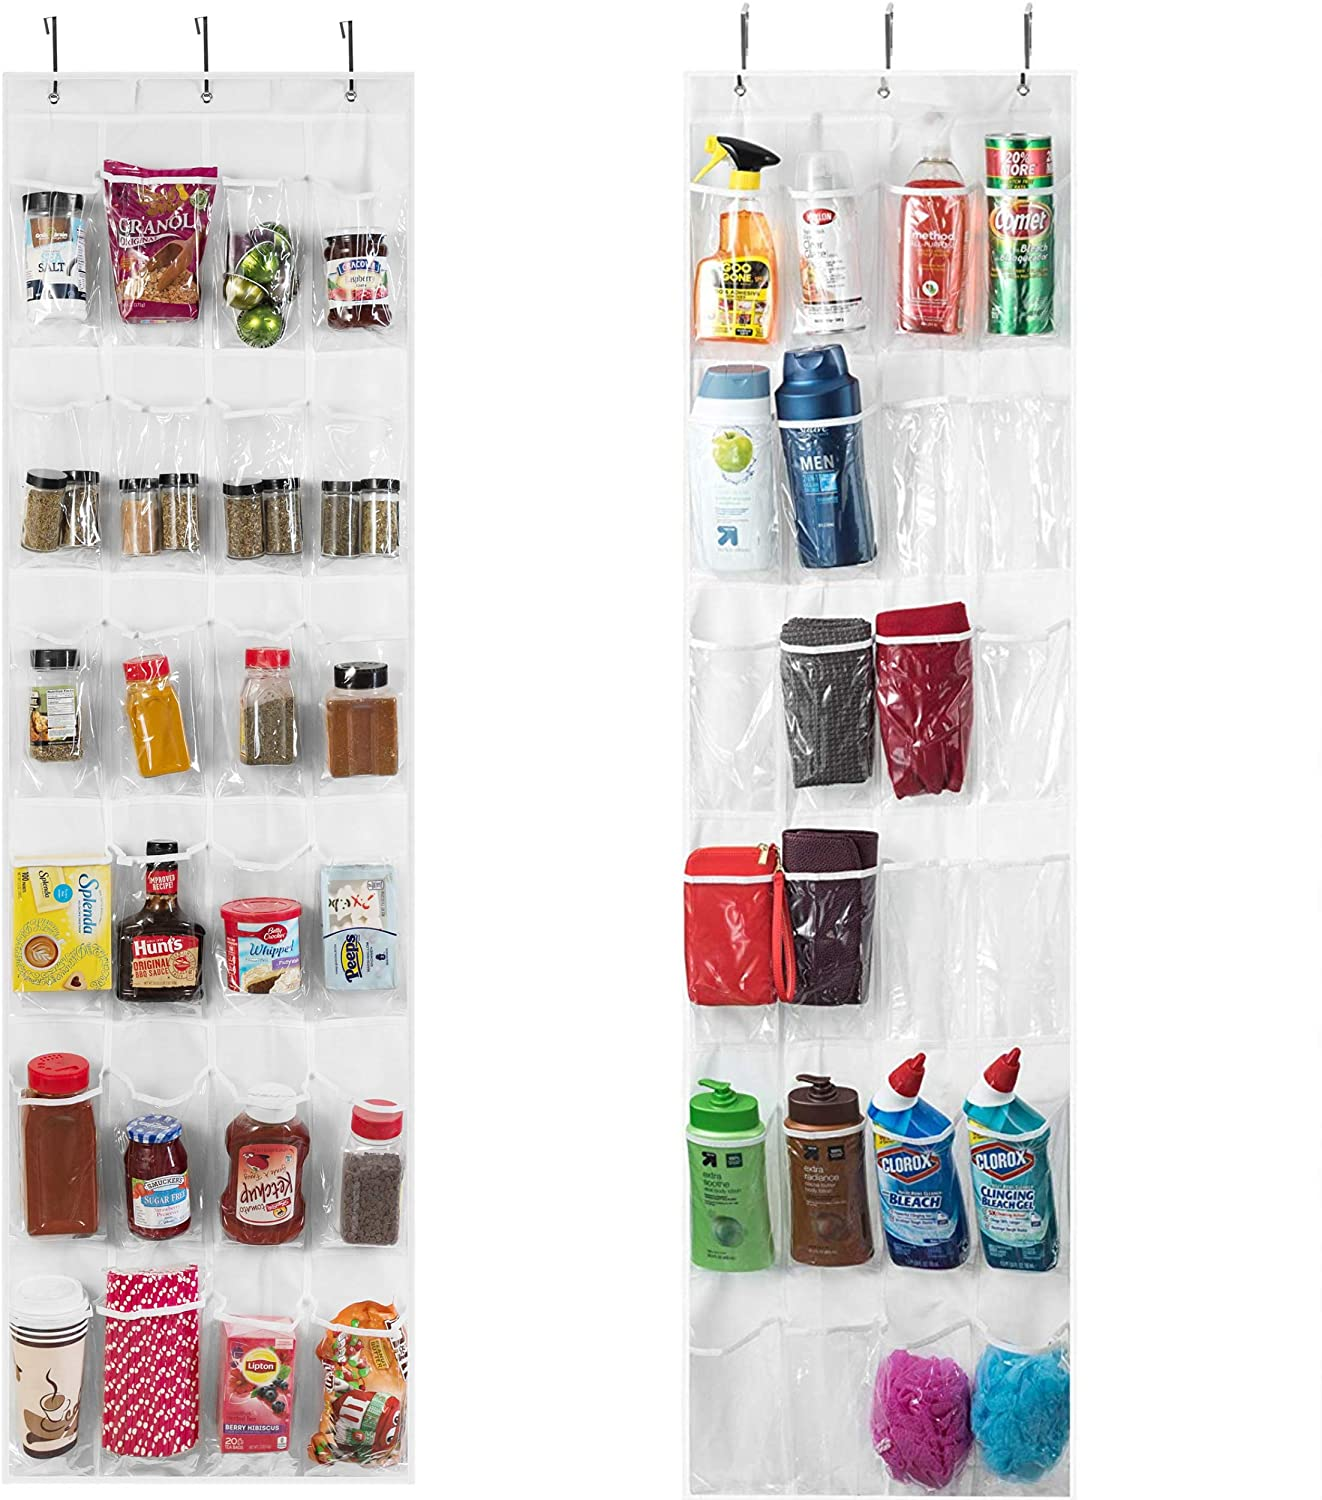 Over The Door Pantry Organization and Storage, Pantry Door Organizer, Spice Rack Organizer for Cabinet, Hanging Spice Rack, K Cup Holder, Shoe Rack, Heavy Duty Door Rack with Strong Metal Hooks (2 Pk)